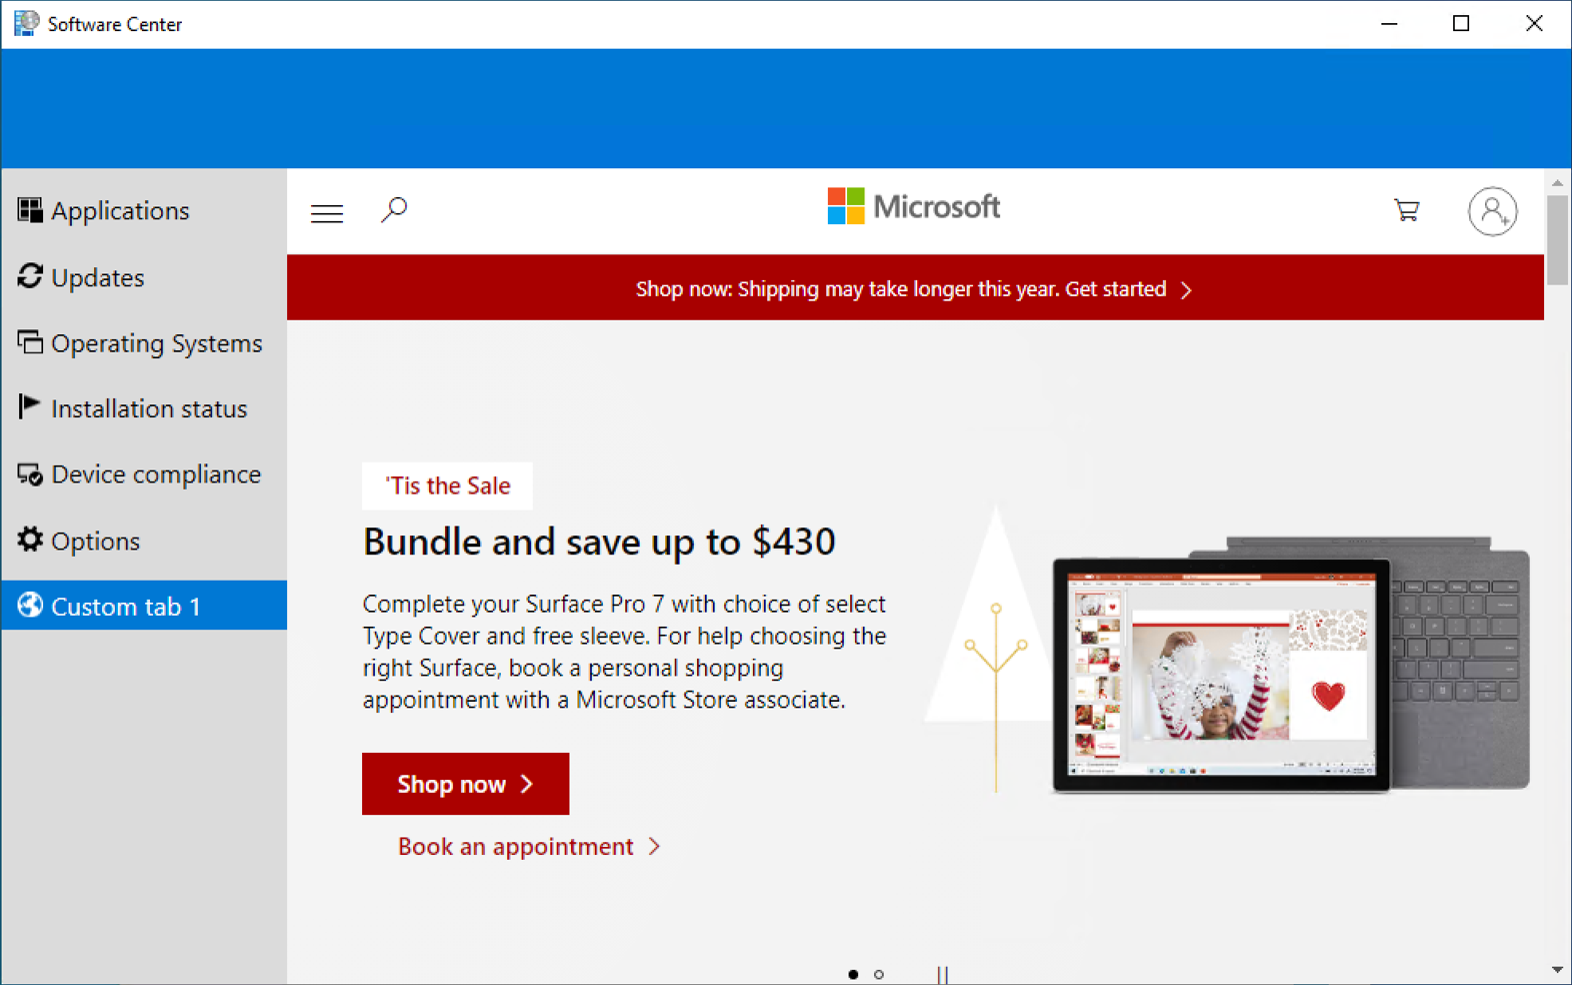 Software Center with a custom tab of the Microsoft website